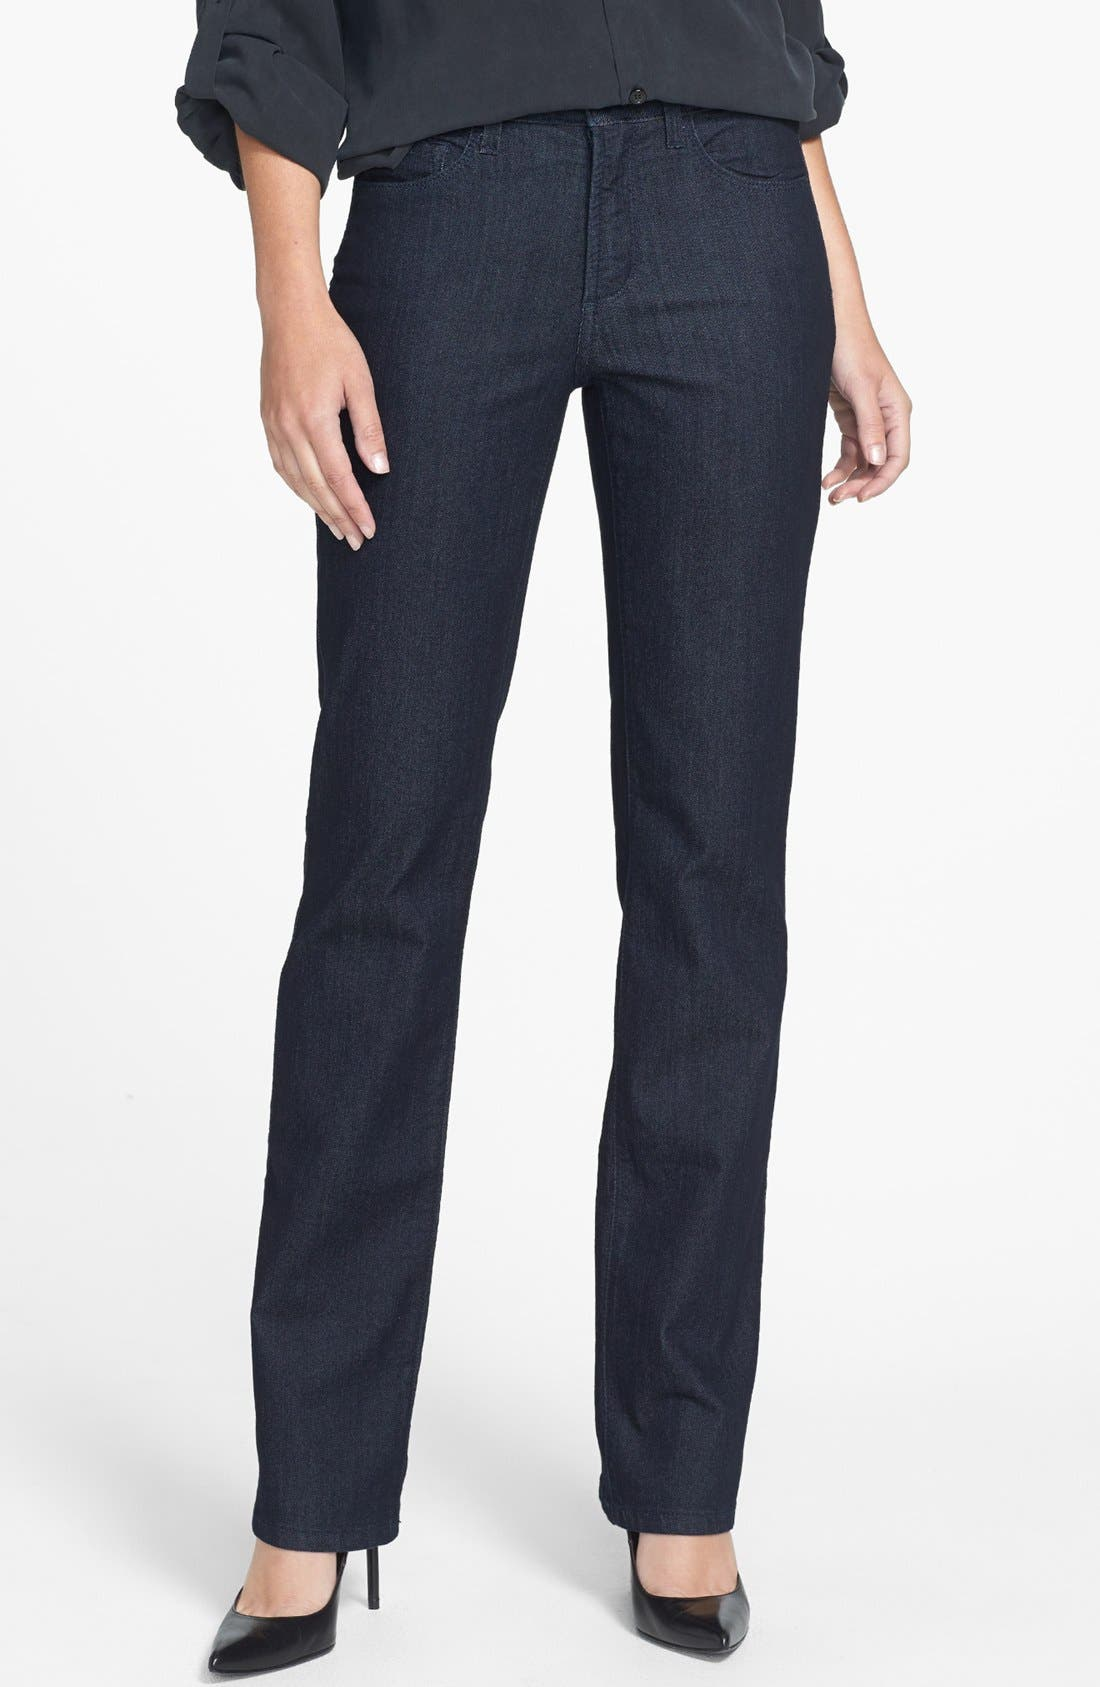 Alternate Image 1 Selected - NYDJ 'Marilyn' Embellished Pocket Stretch Straight Leg Jeans